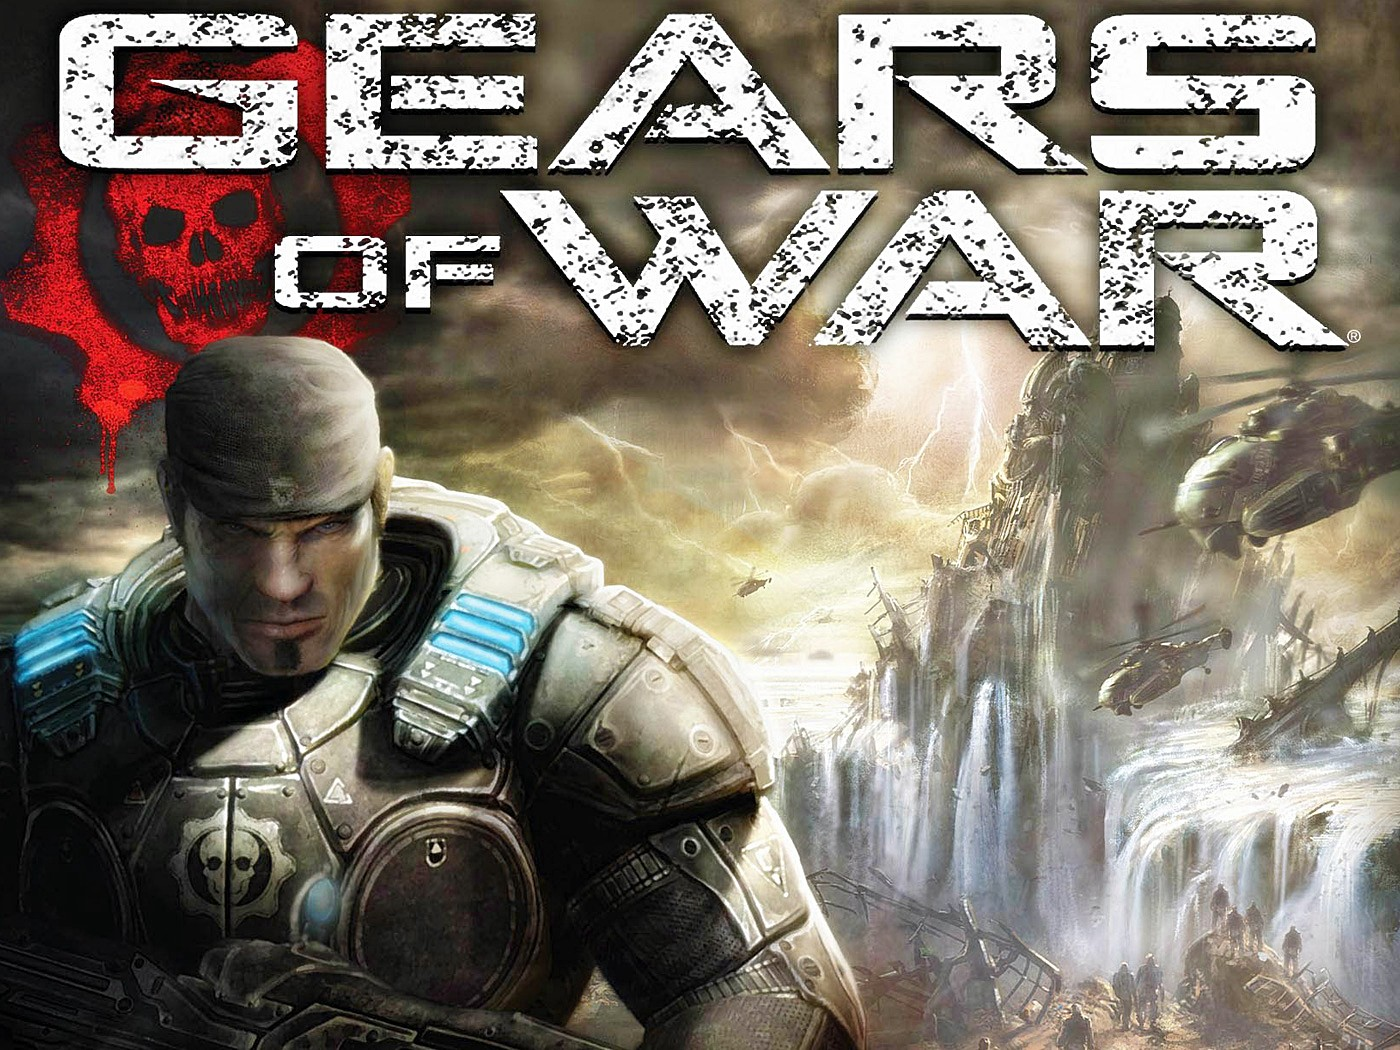 Free Download Gears Of War Dvd Cover Wallpapers Hd Wallpapers